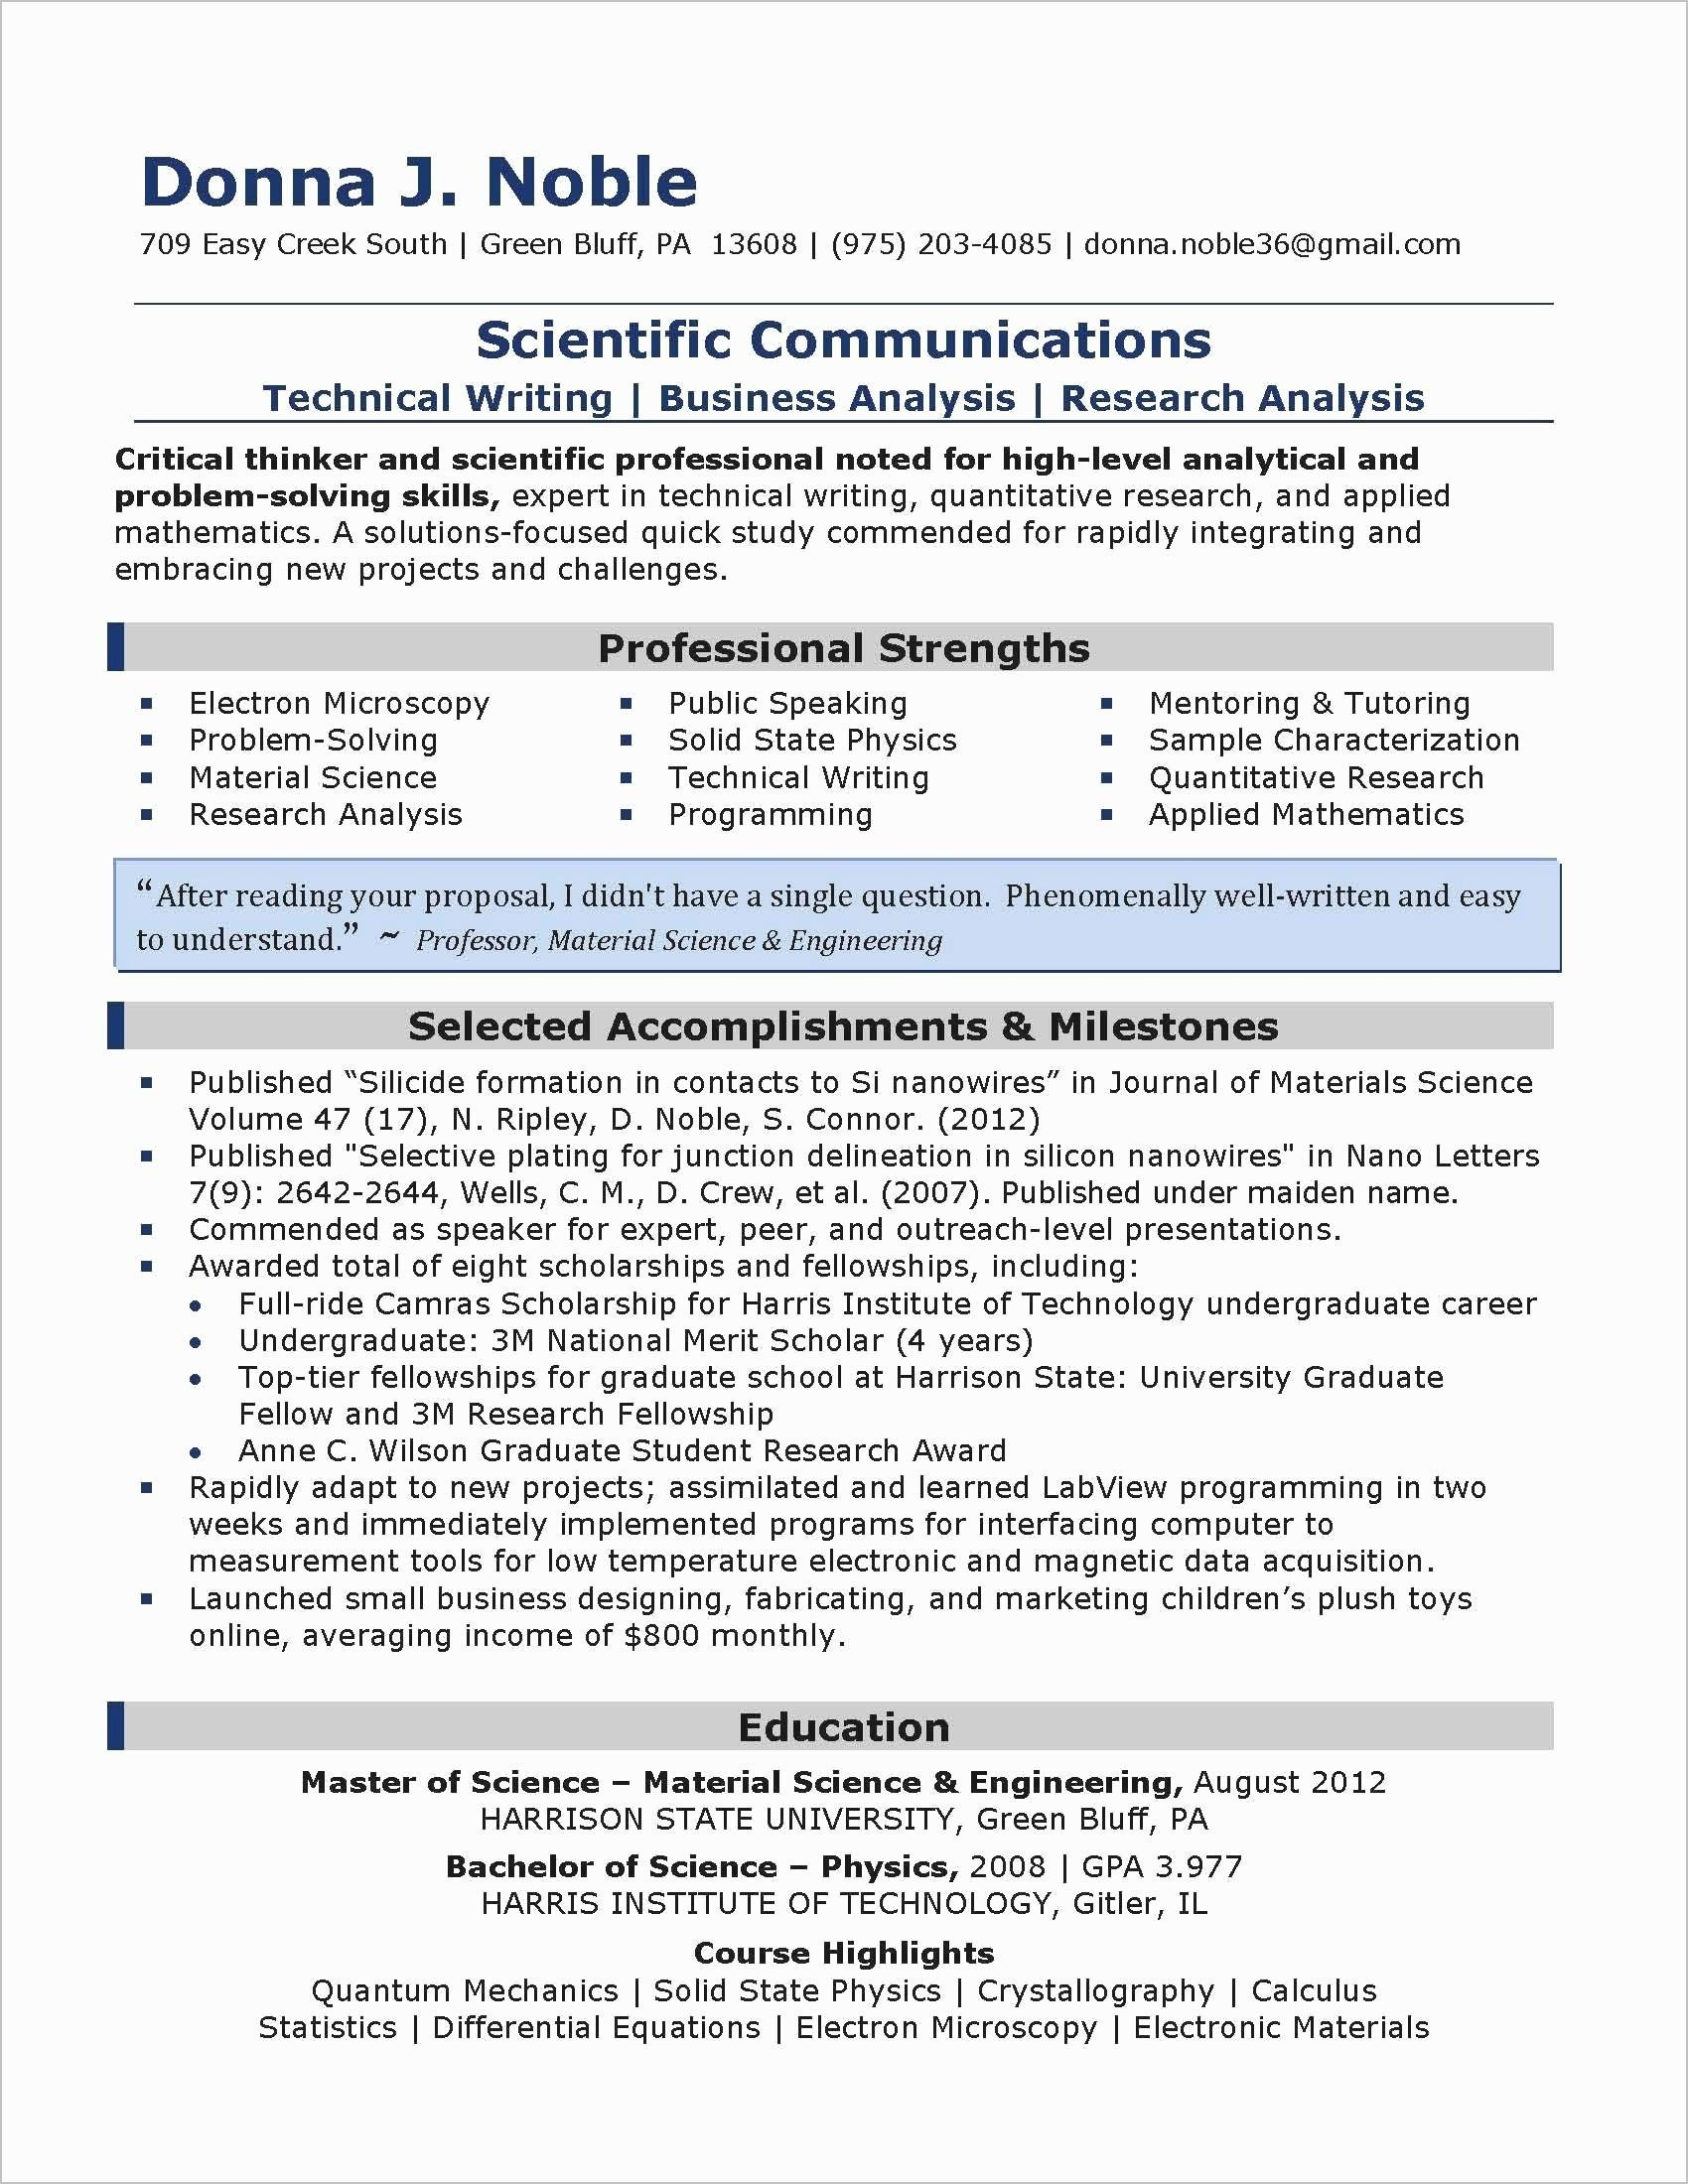 Public Speaker Resume Sample - Sample Professor Resume New assistant Professor Resume format